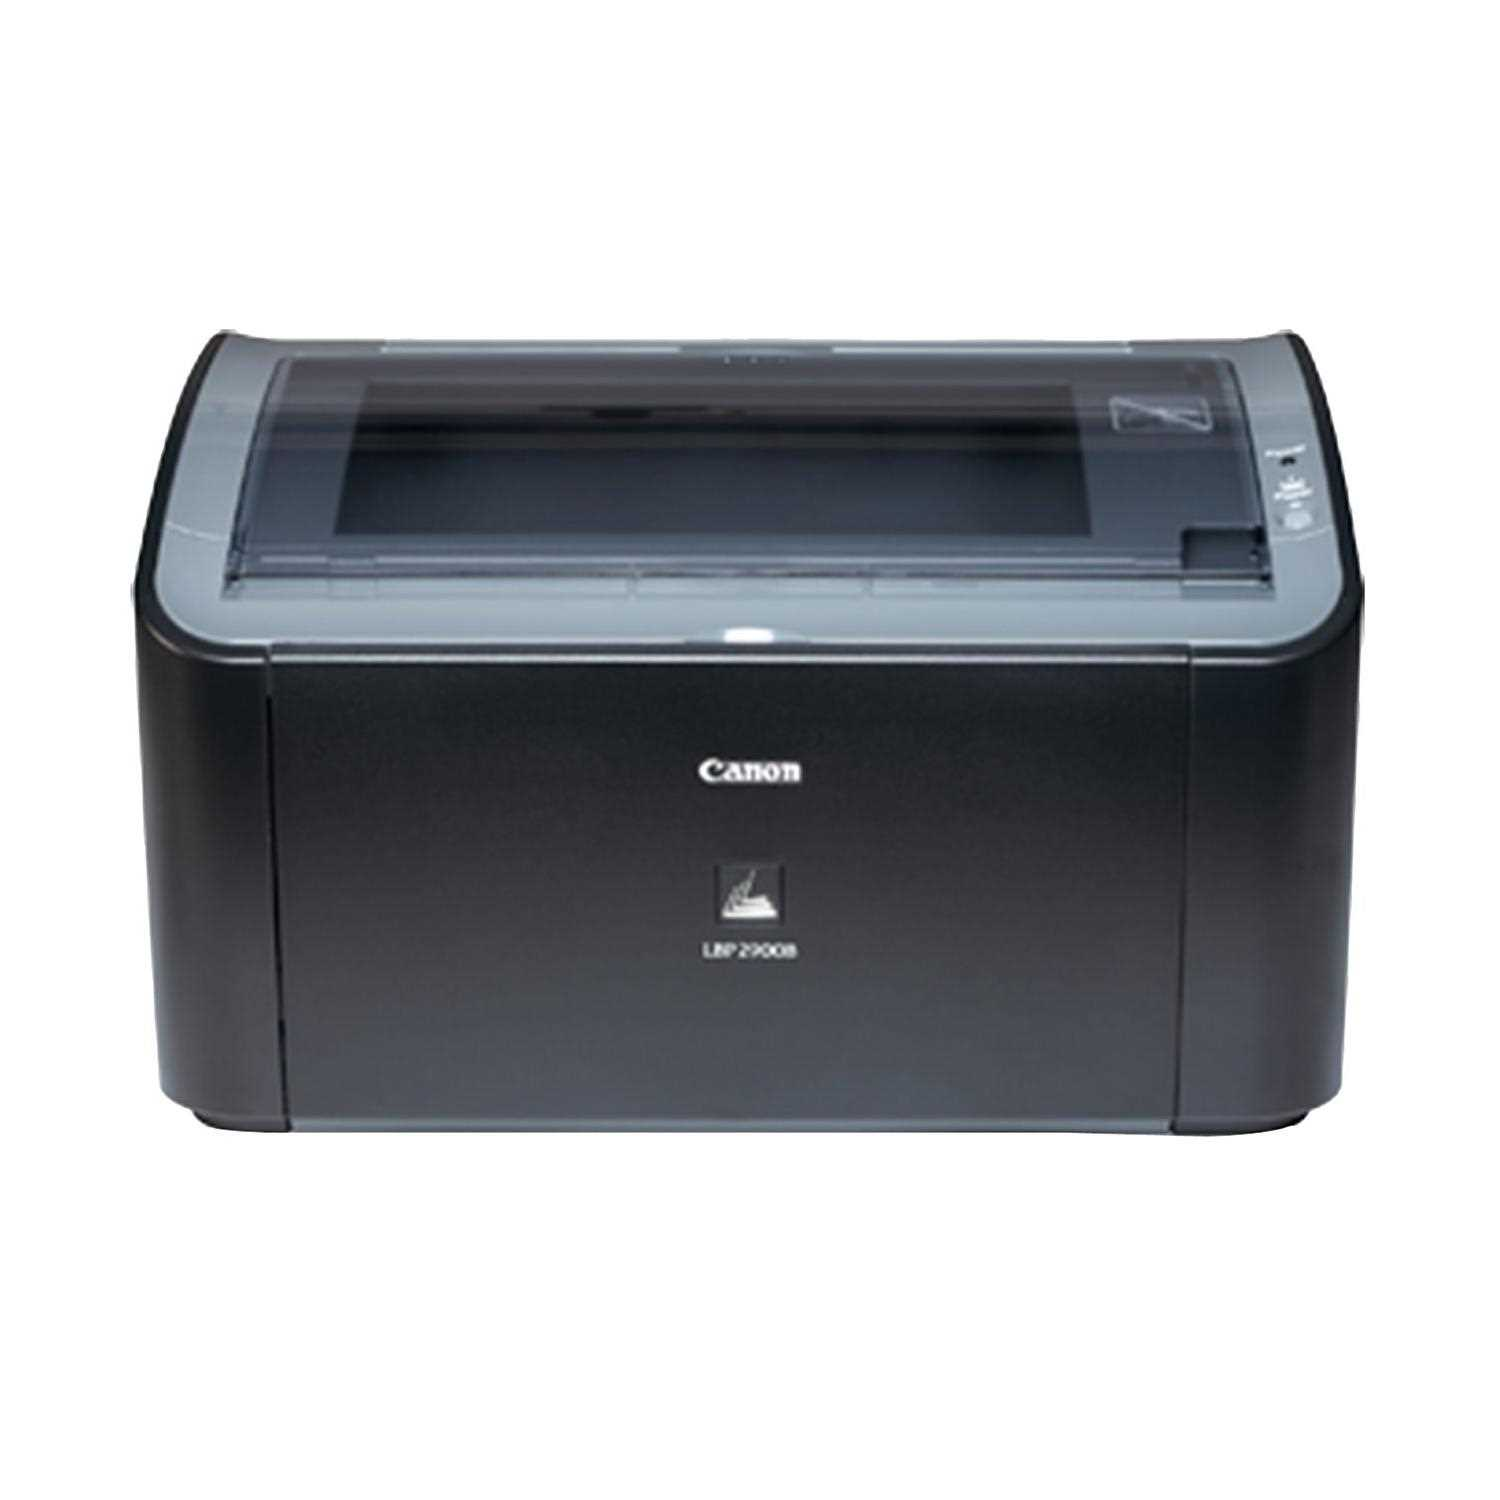 Forum on this topic: This Canon laser printer is a cost-effective , this-canon-laser-printer-is-a-cost-effective/